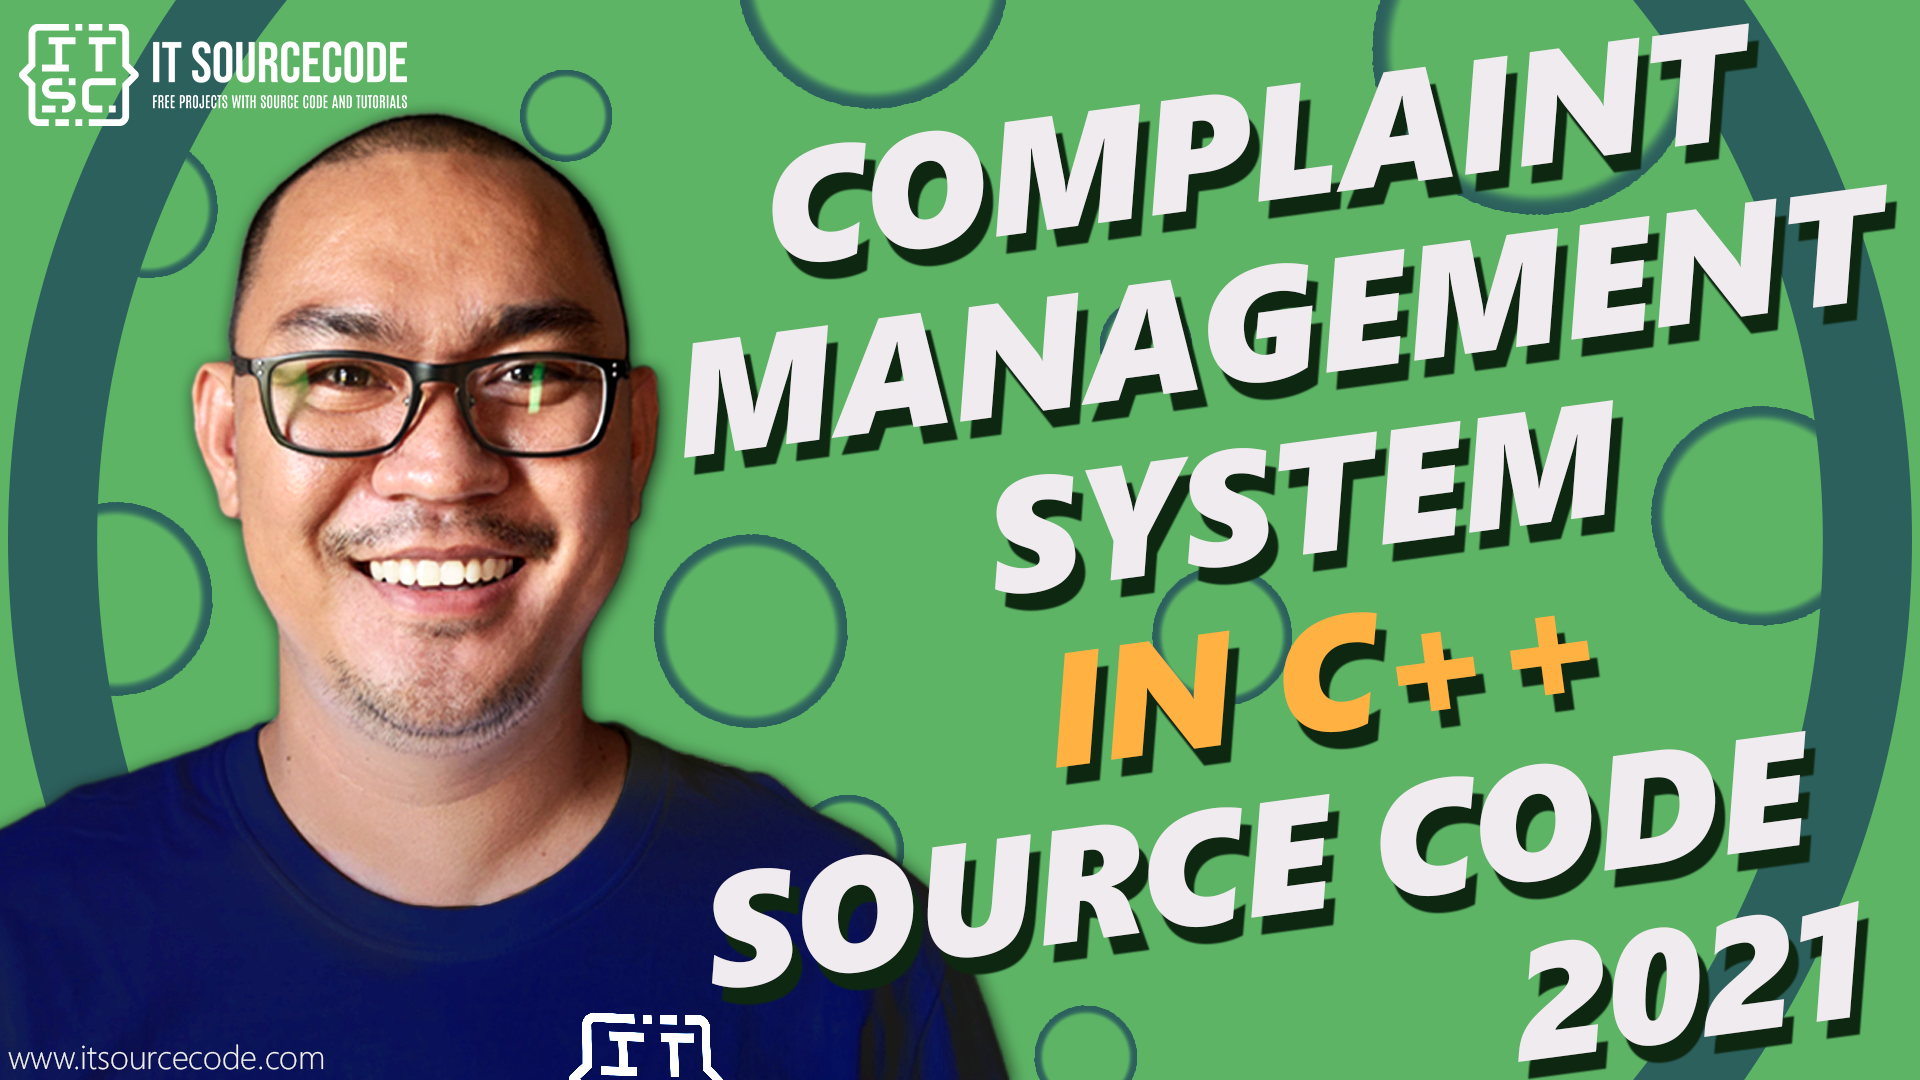 Complaint Management System in C++ with Source Code